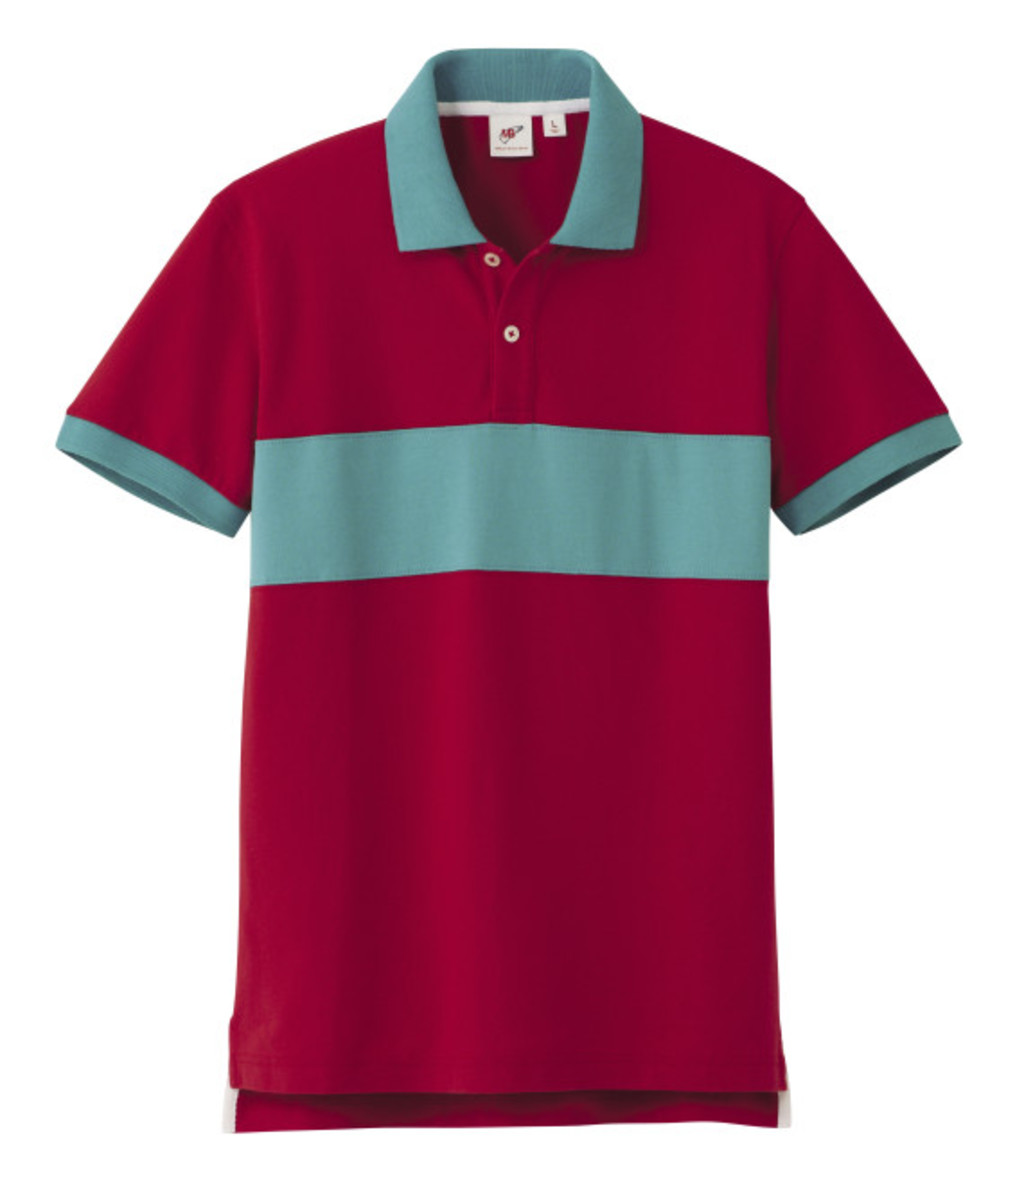 michael-bastian-x-uniqlo-mens-polo-shirt-collection-2013-23